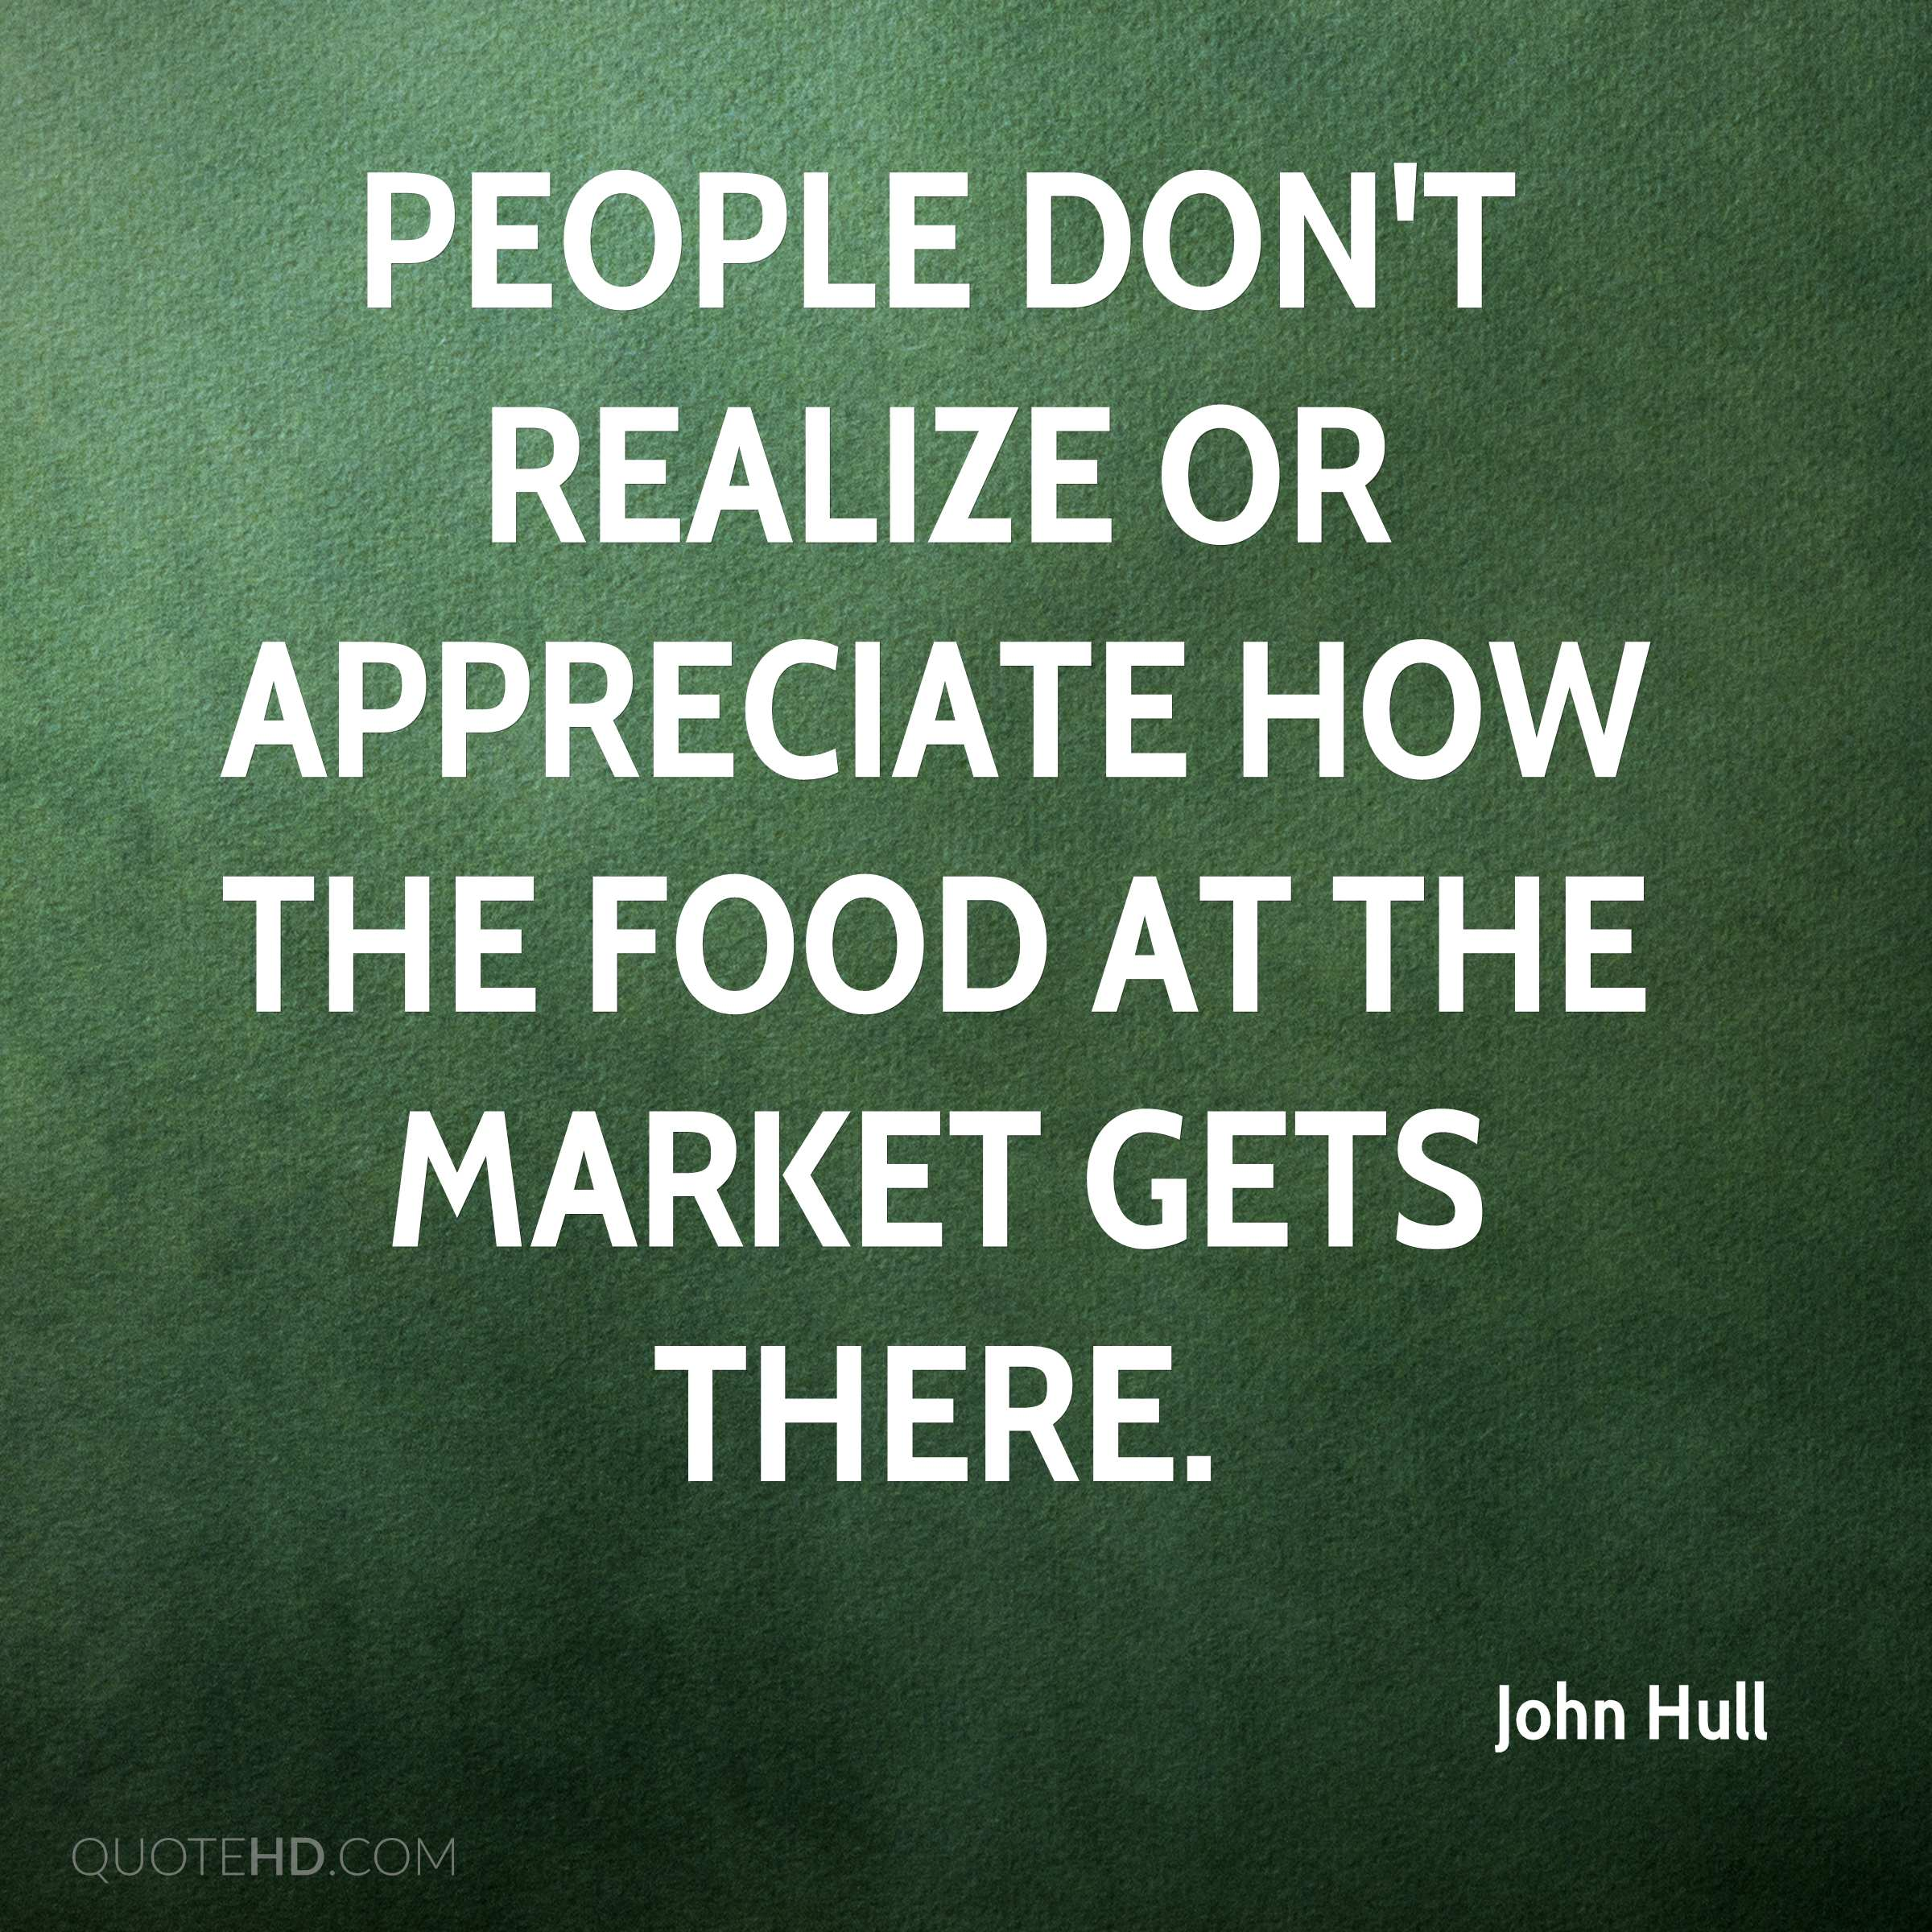 People don't realize or appreciate how the food at the market gets there.